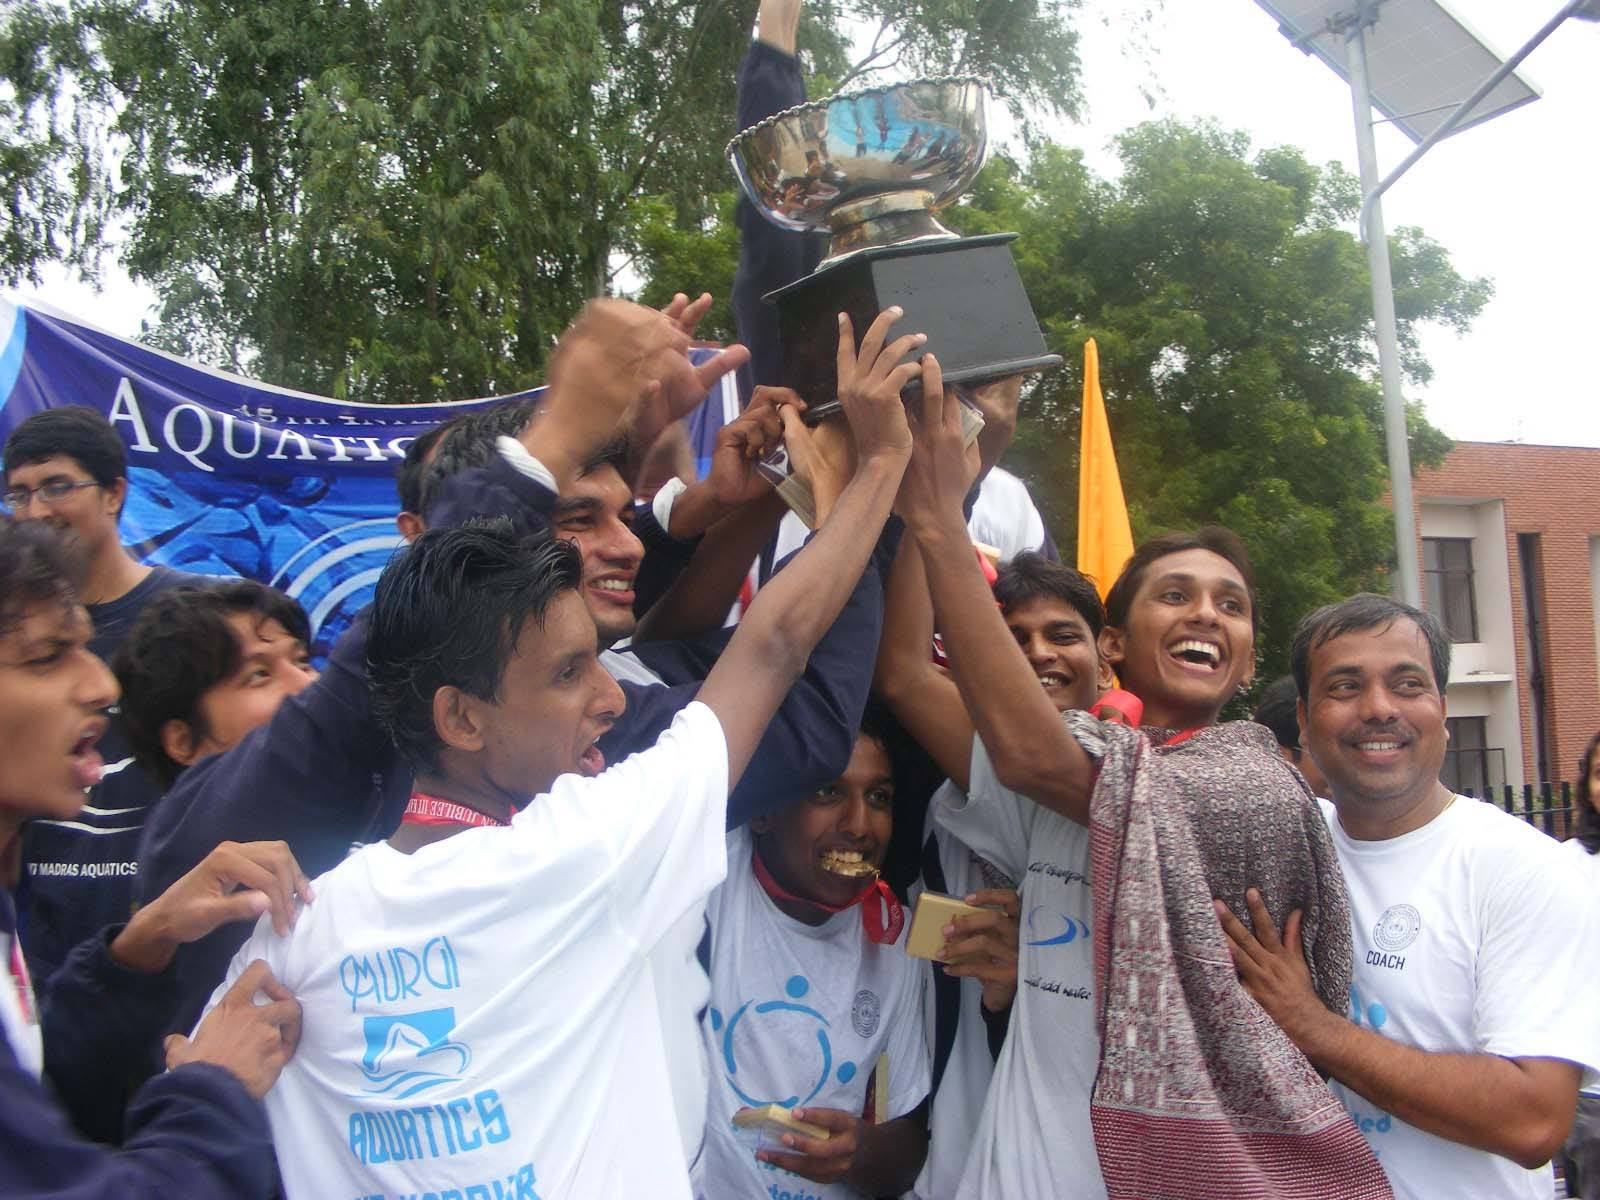 When IIT Kanpur lifted the water polo trophy in 2009